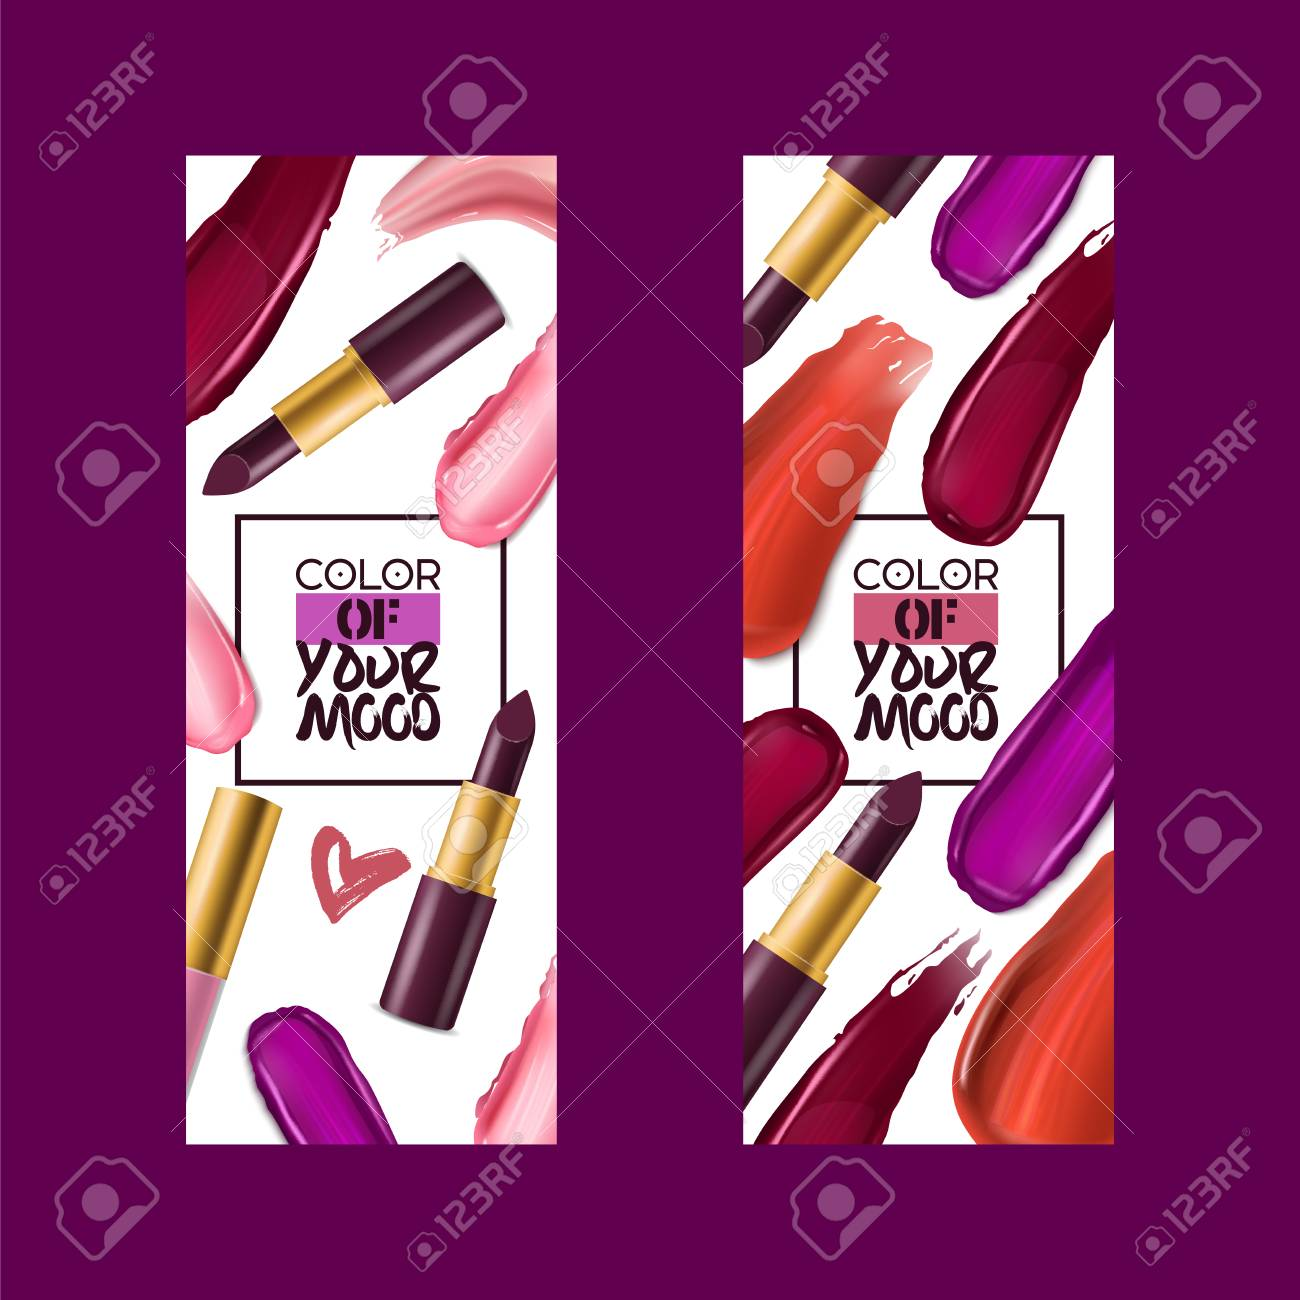 Lipstick Pattern Vector Beautiful Red Color Fashion Pink Lipgloss Royalty Free Cliparts Vectors And Stock Illustration Image 126067638